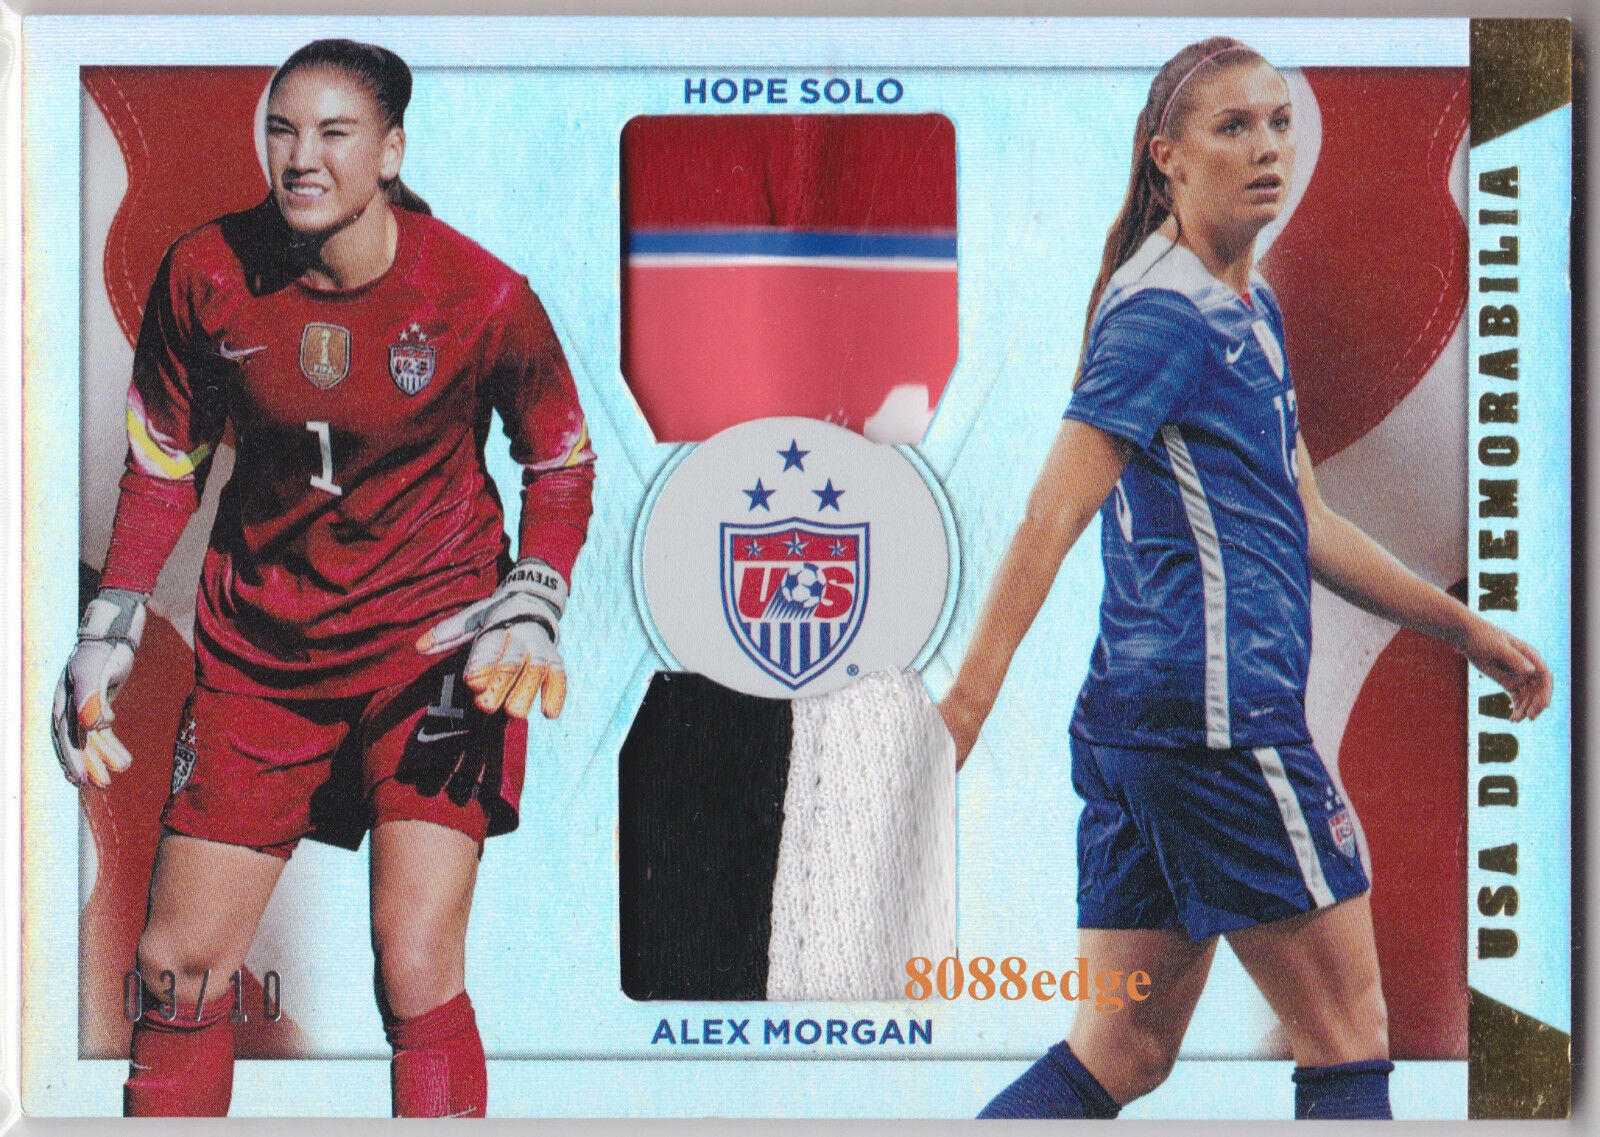 2015 PANINI SOCCER DUAL 4CL PATCH HOPE SOLO + ALEX MORGN  3 10 NATIONAL TEAM USA